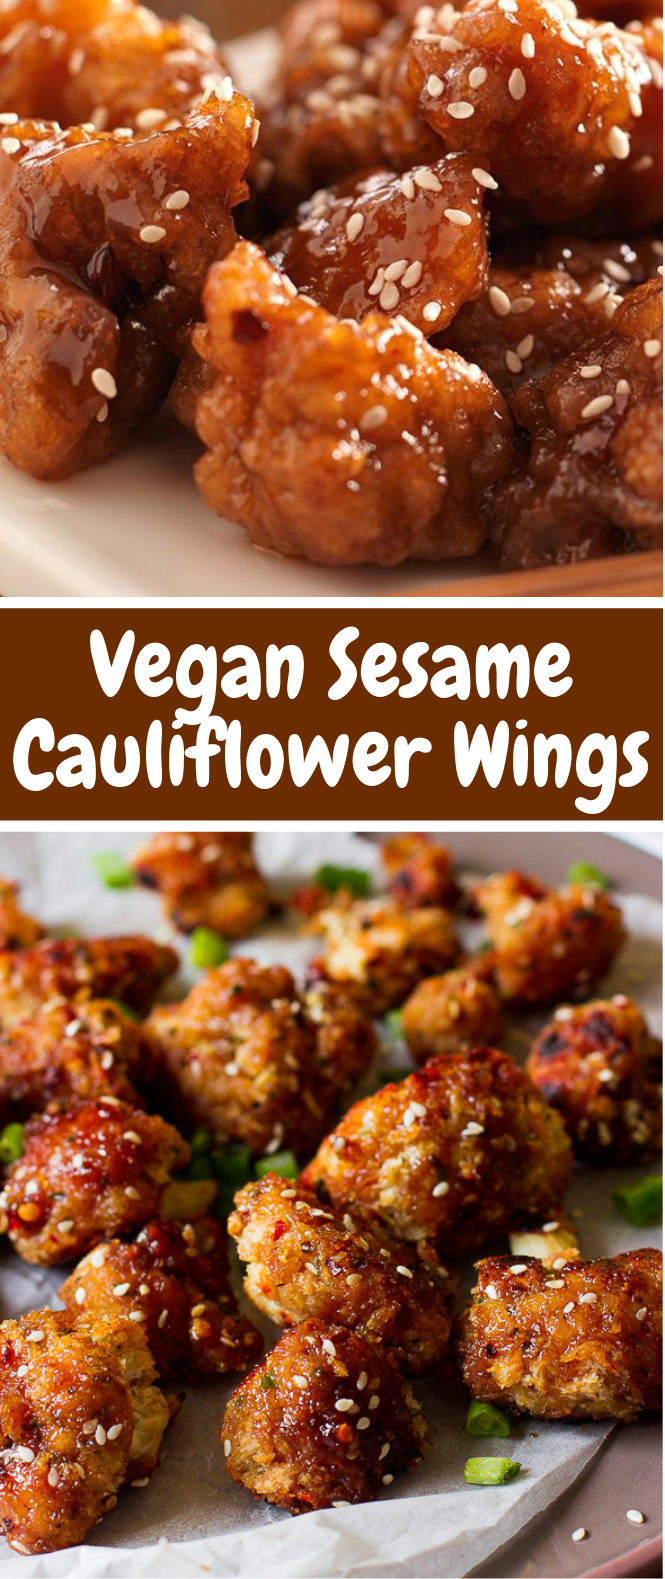 Sticky Sesame Vegan Cauliflower Wings #veganrecipe #perfectgame